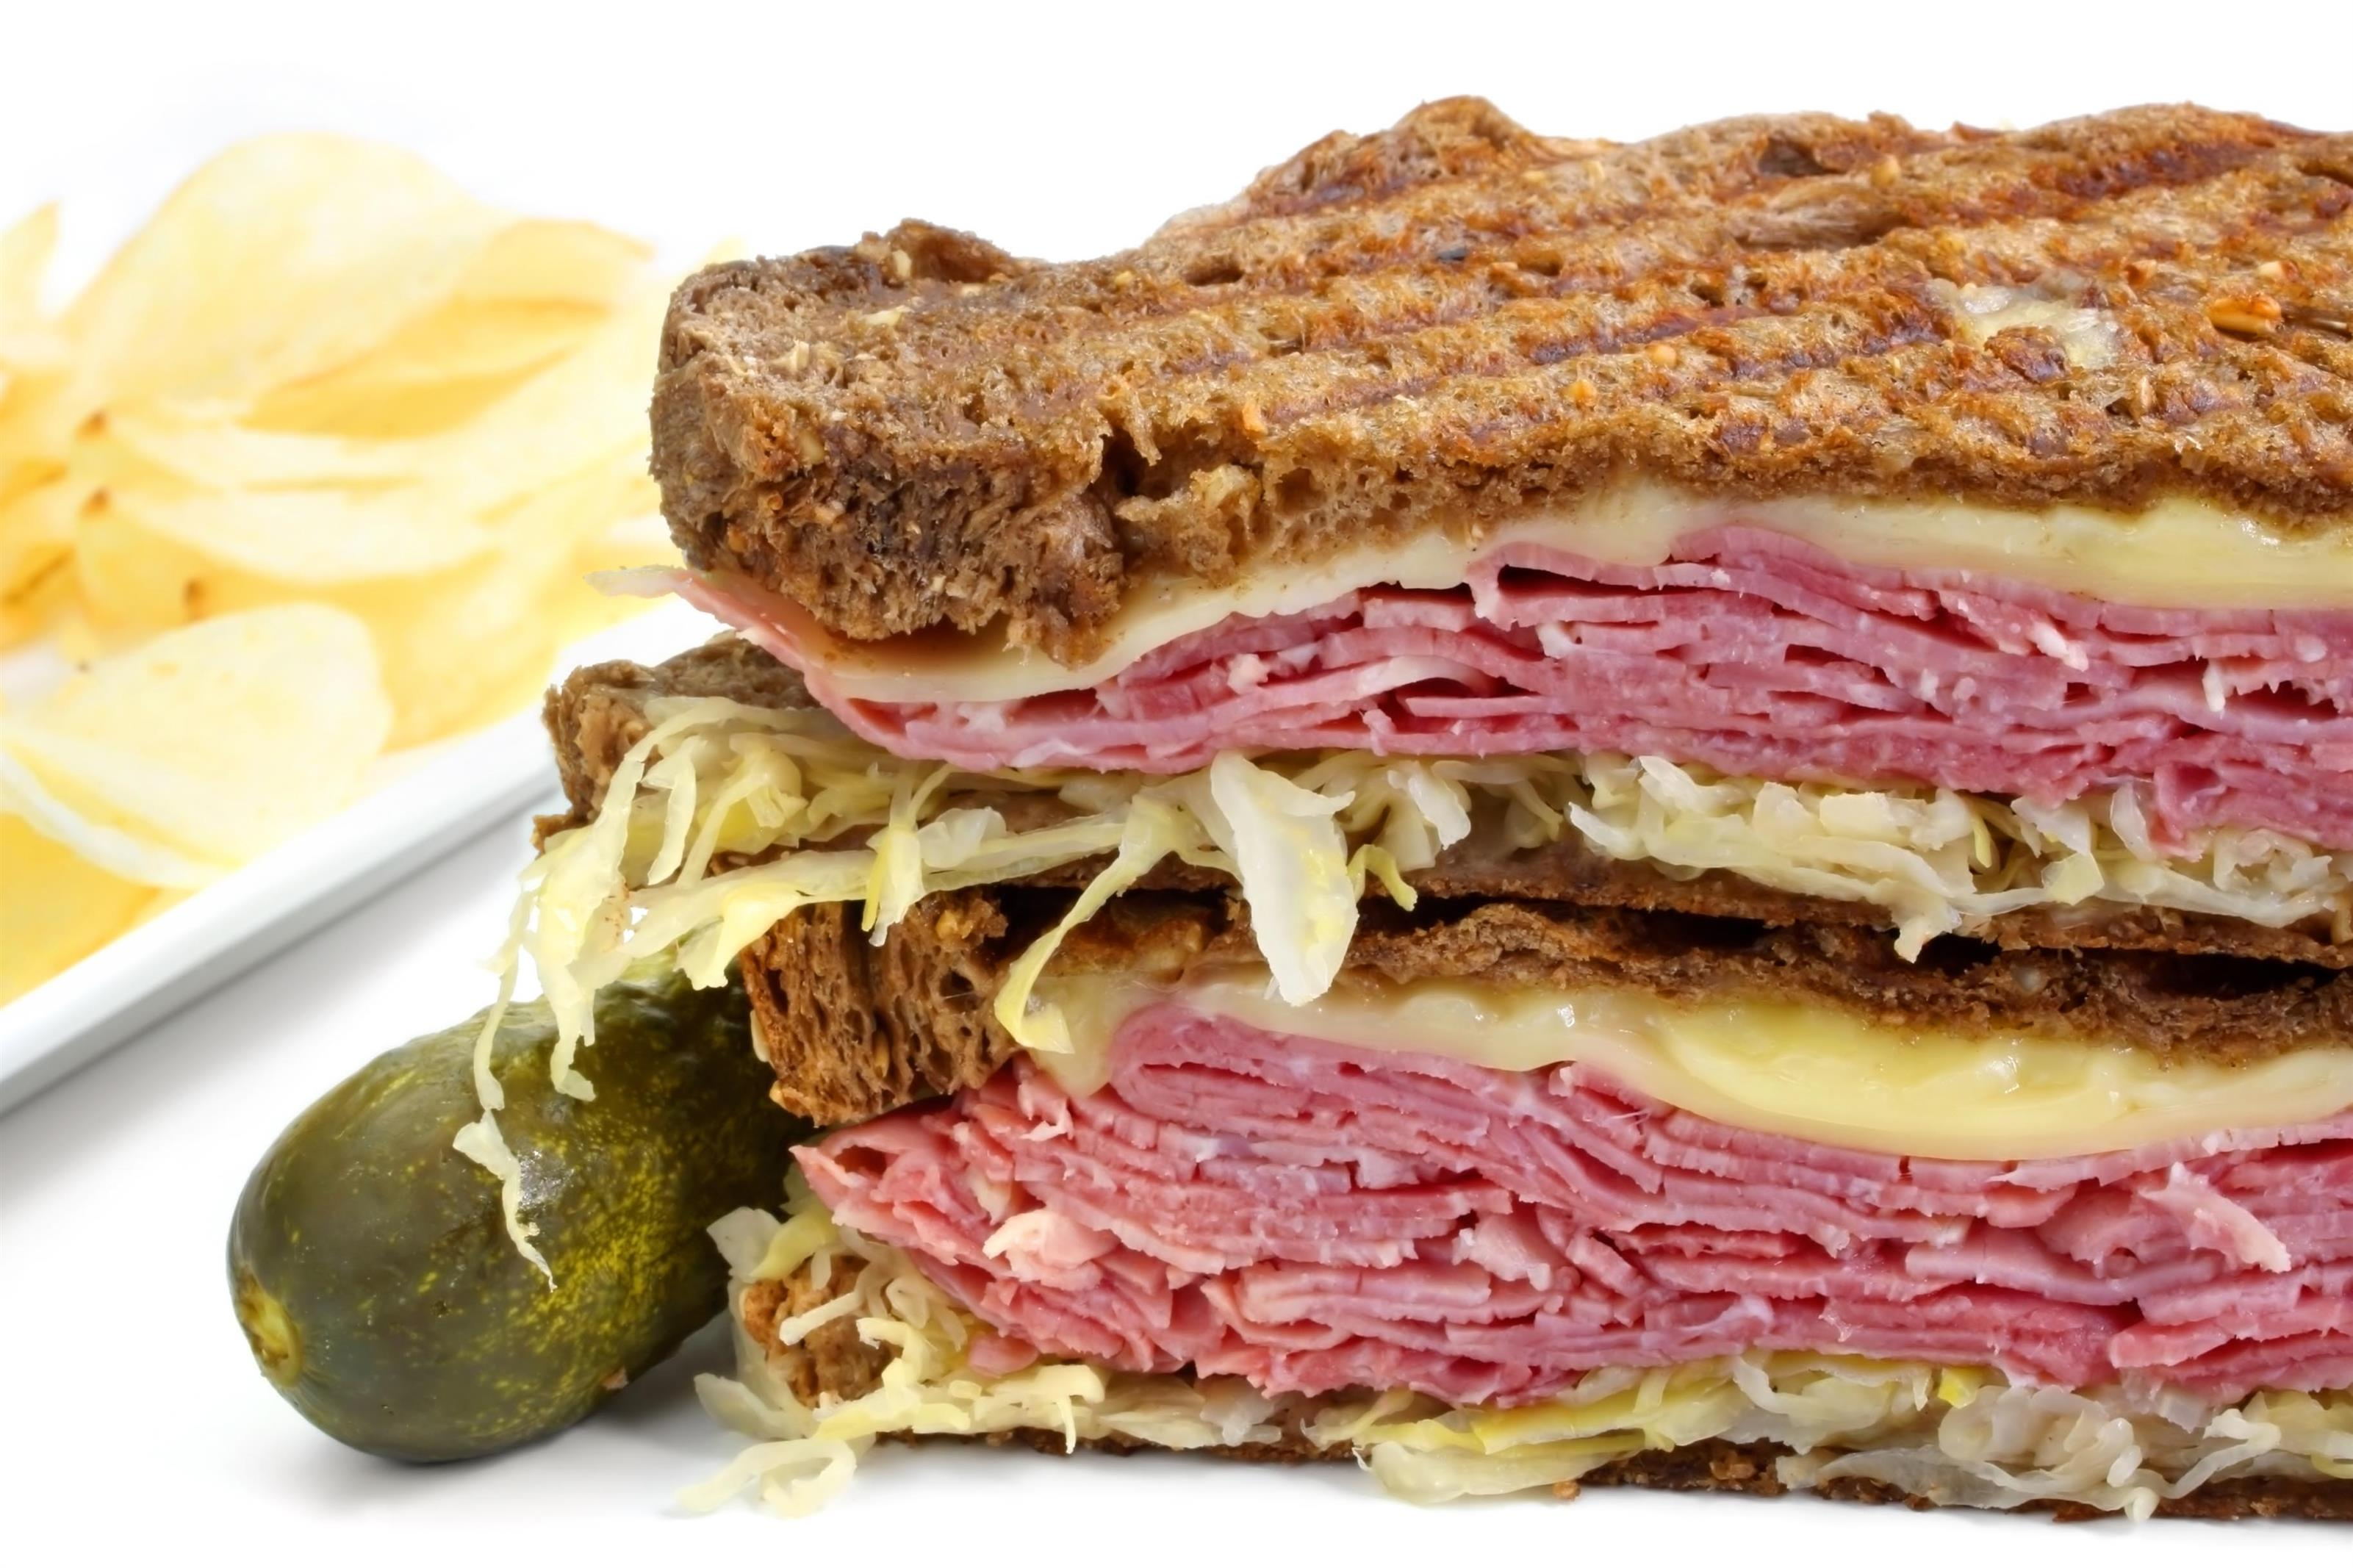 reuban sandwich with corned beef, coleslaw, and cheese on a toasted panini sandwich with pickles on the side